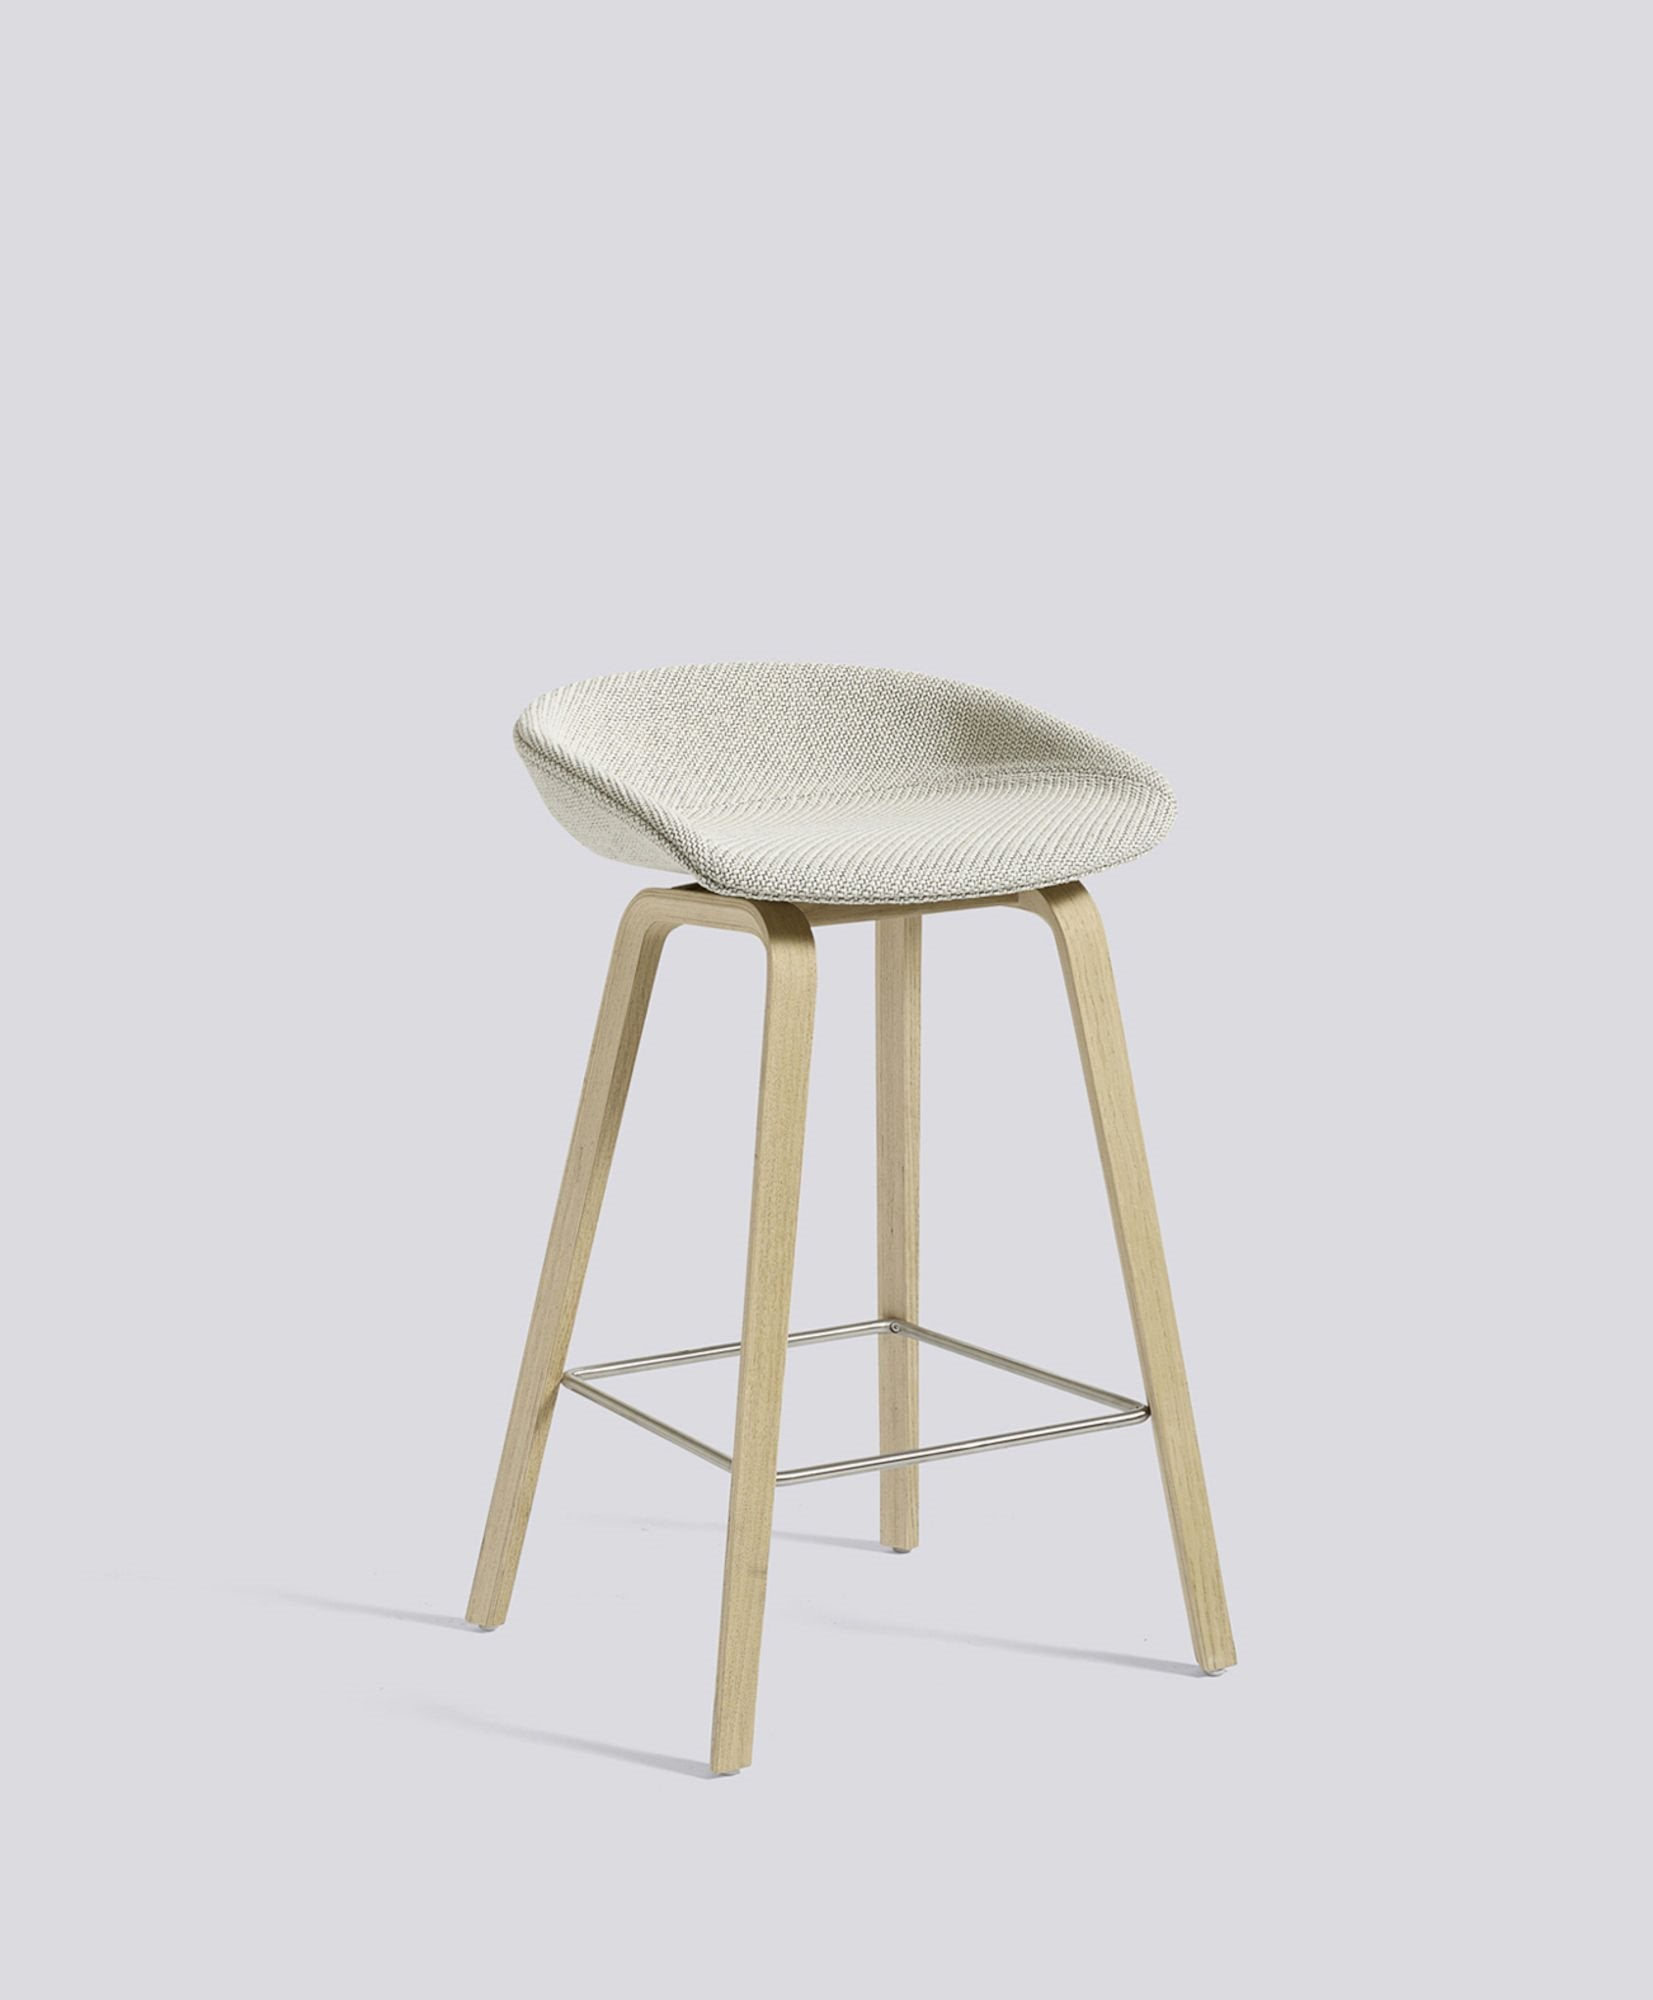 About A Stool AAS33 64cm-Full Upholstery